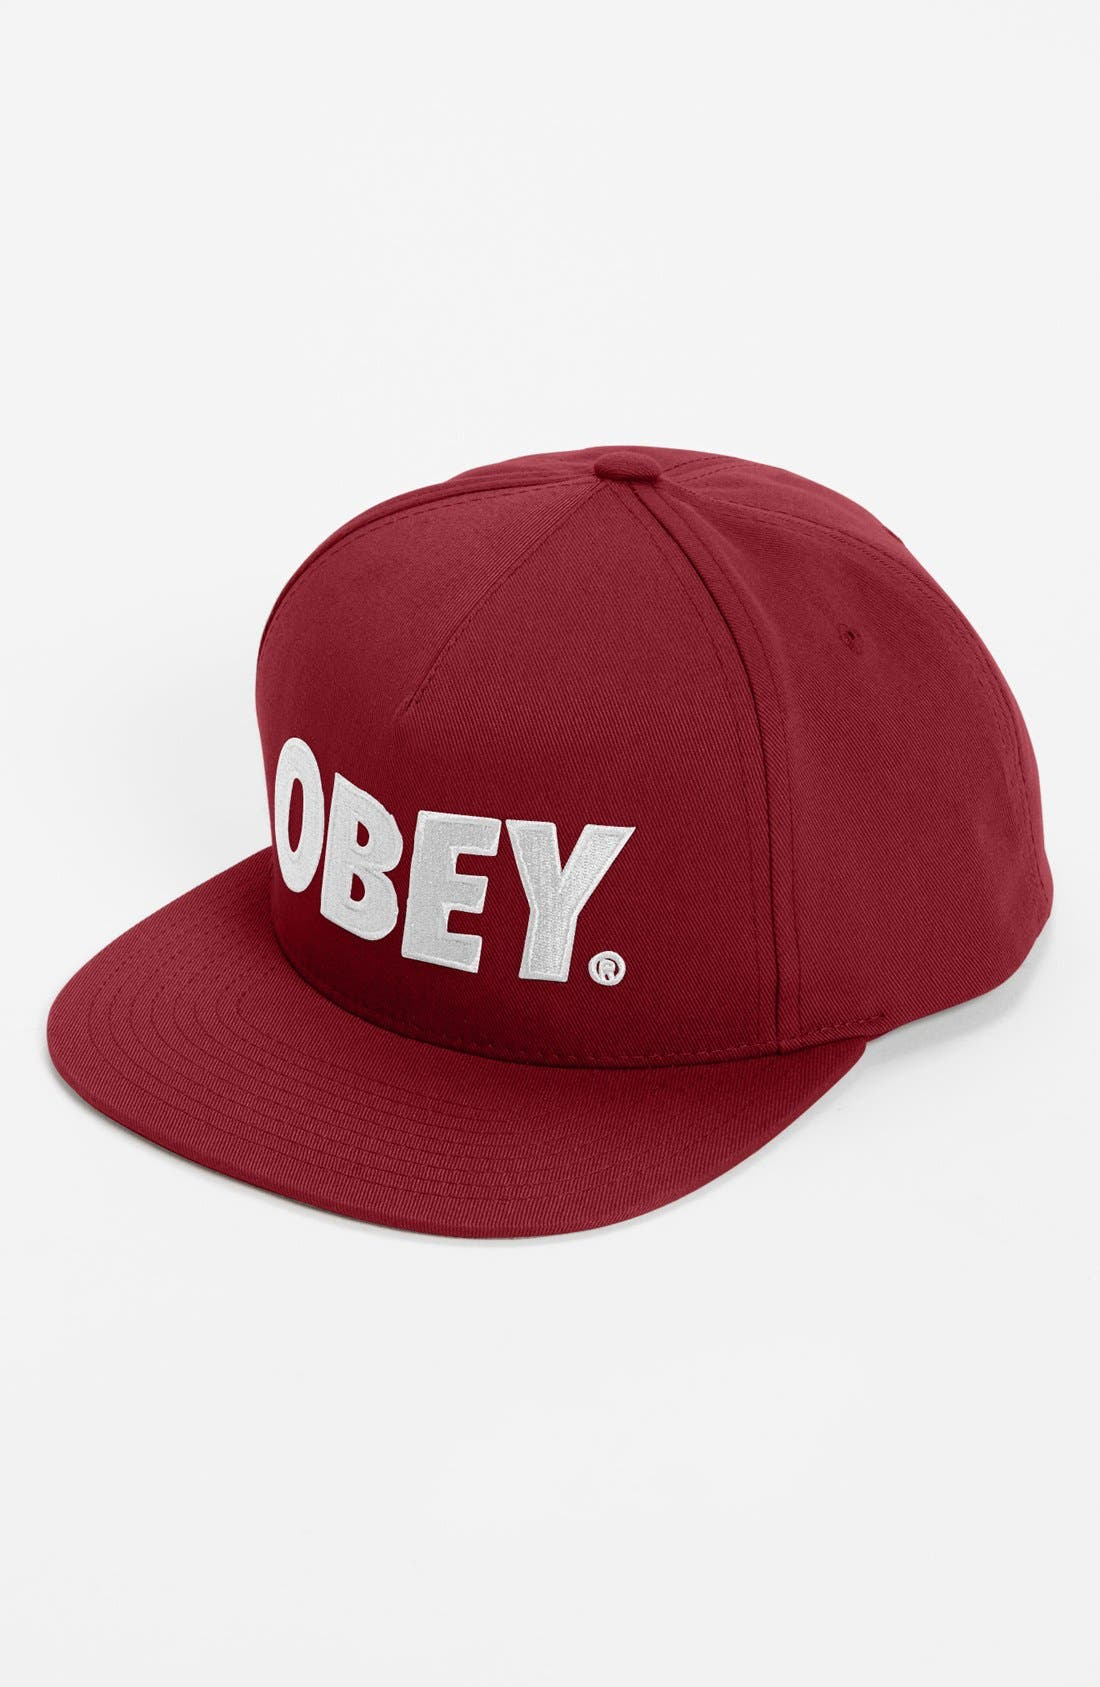 Main Image - Obey 'The City' Snapback Cap